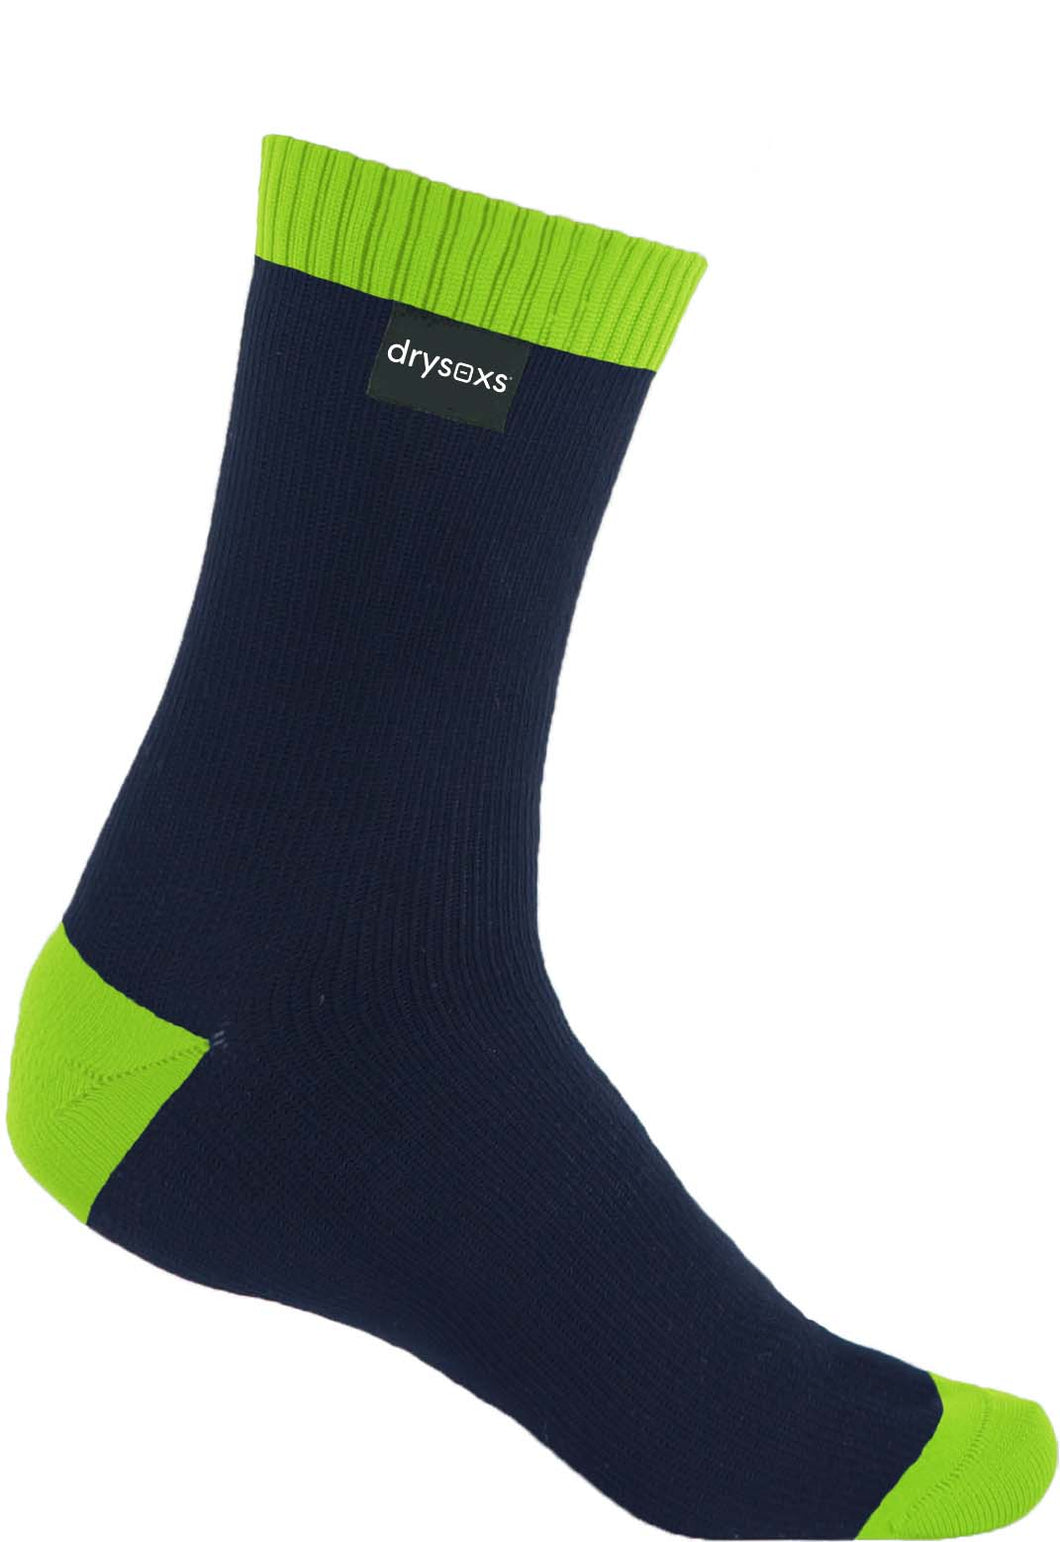 Double Cotton Socks Mid Length - Navy-Green